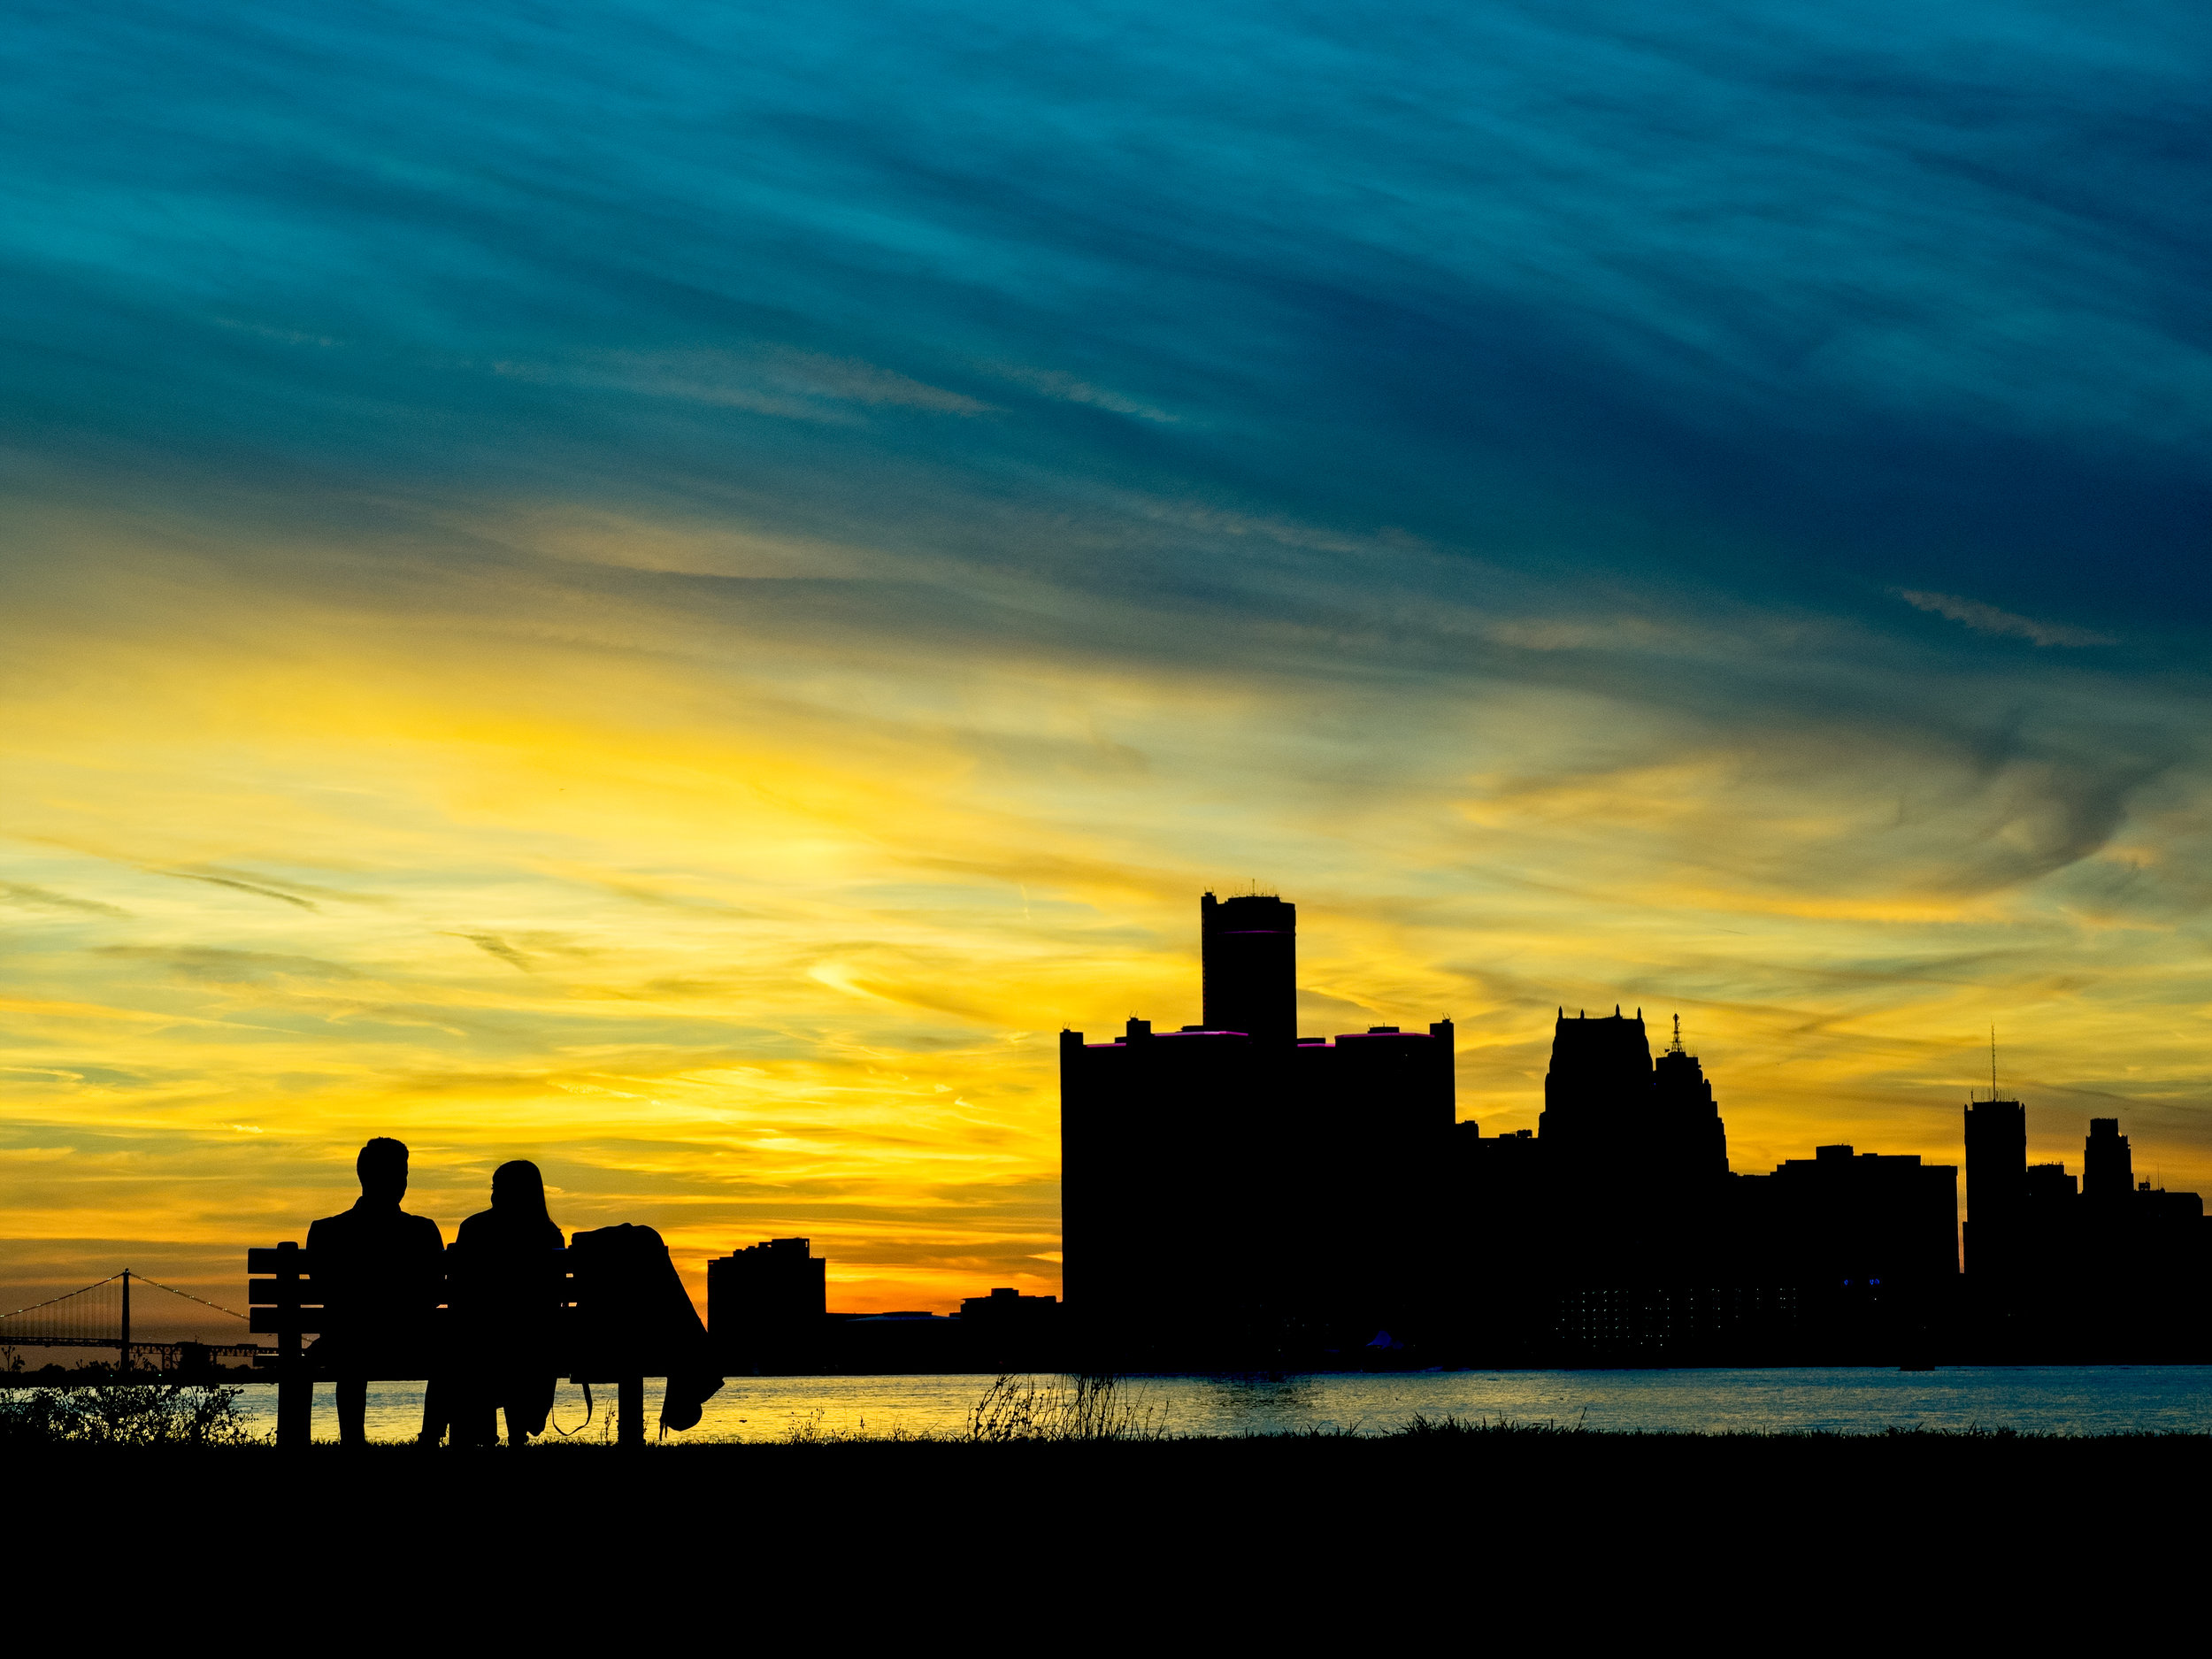 One of the images in the article, this one of the Detroit skyline